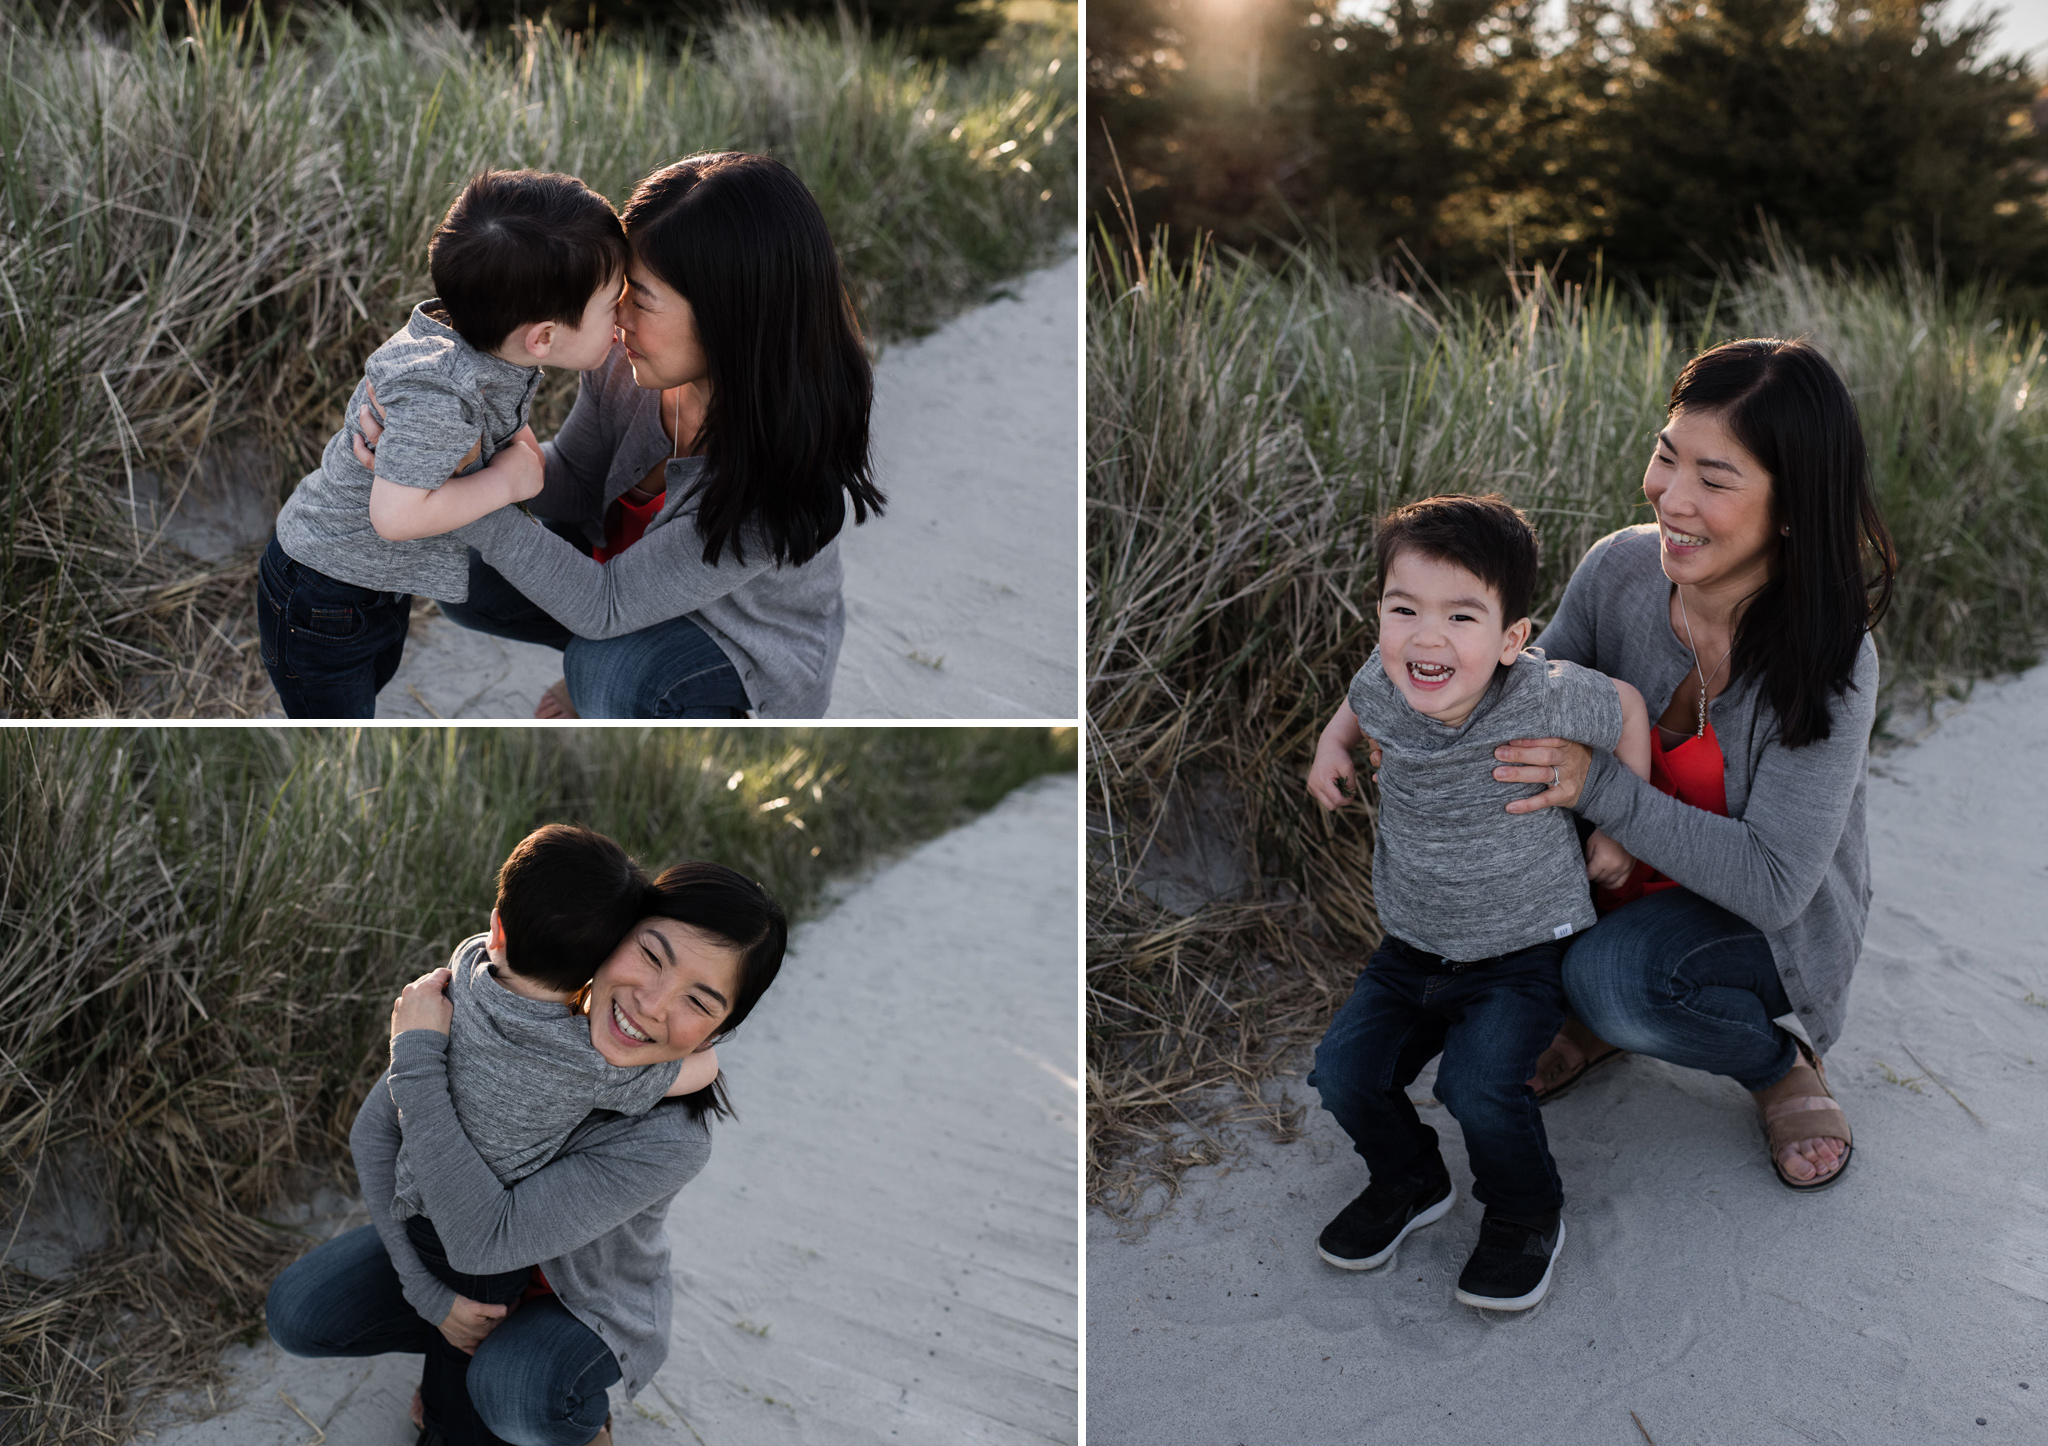 124-interracial-family-young-boys-in-field-documentary-family-session.jpg